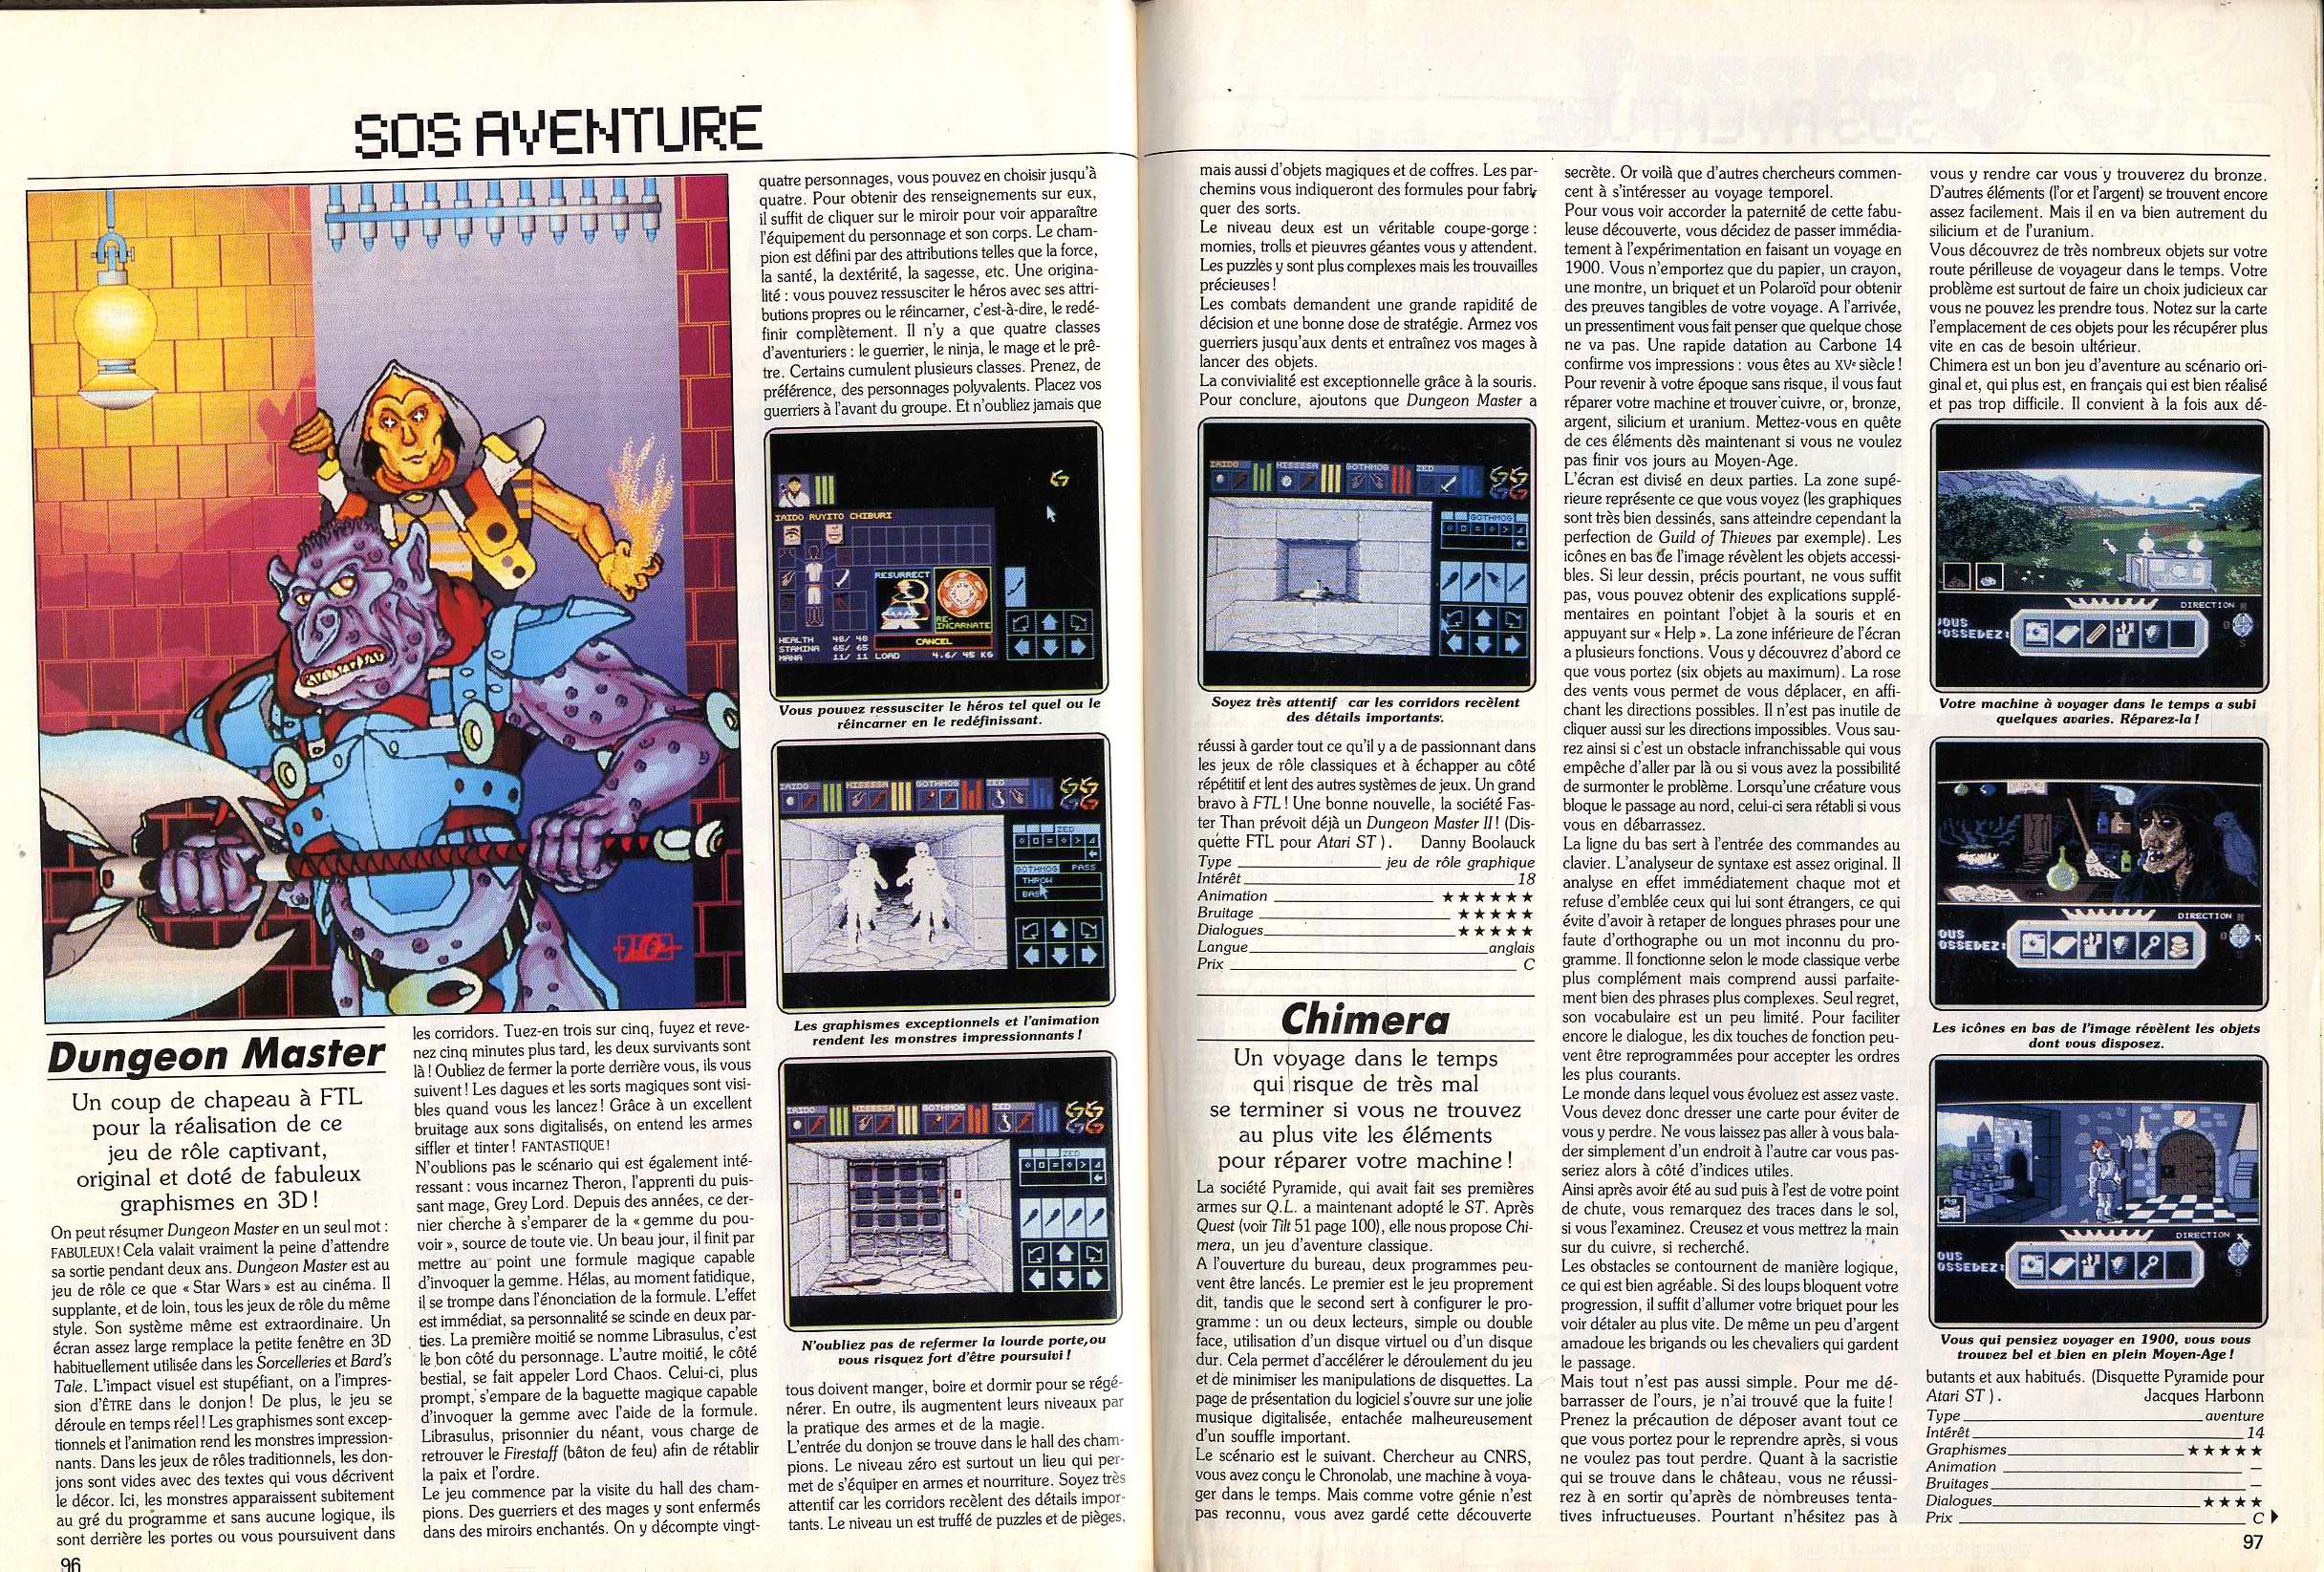 Dungeon Master for Atari ST Review published in French magazine 'Tilt', Issue #52, March 1988, Pages 96-97